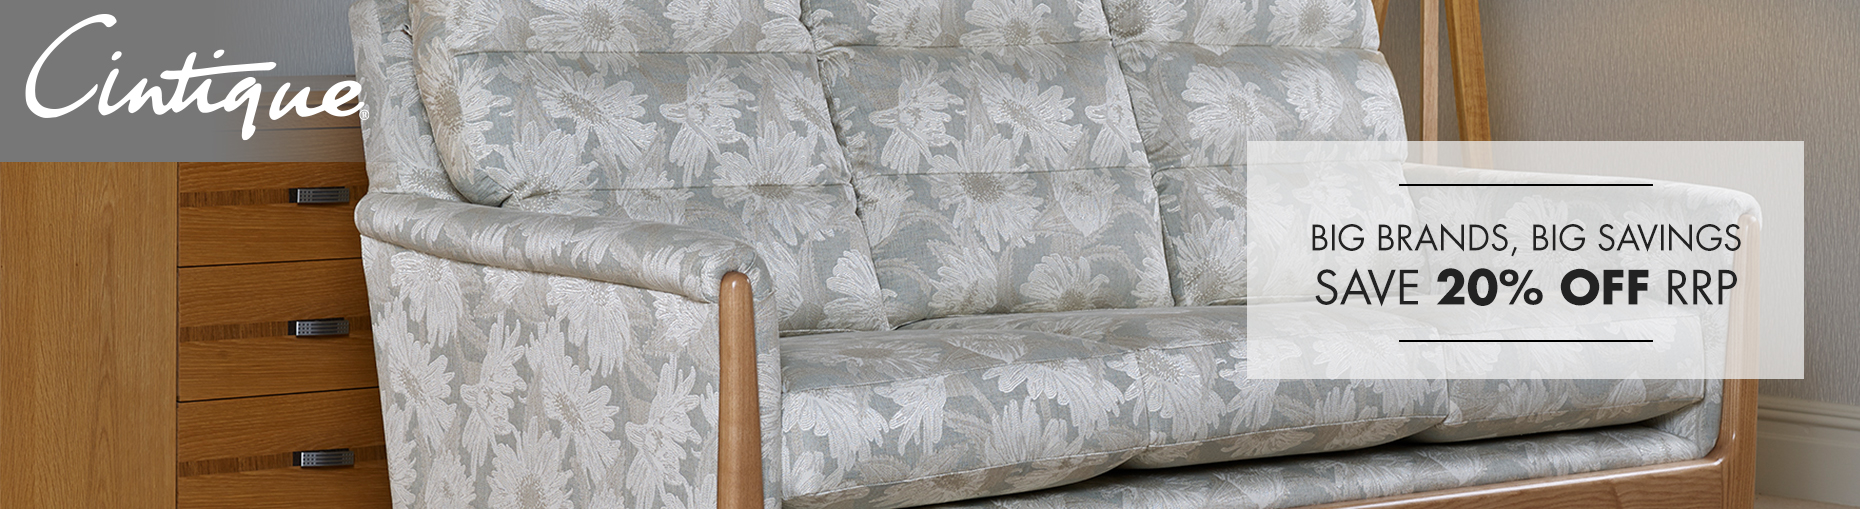 Cintique Upholstery Sofa collections at Forrest Furnishing and save 20% off rrp.